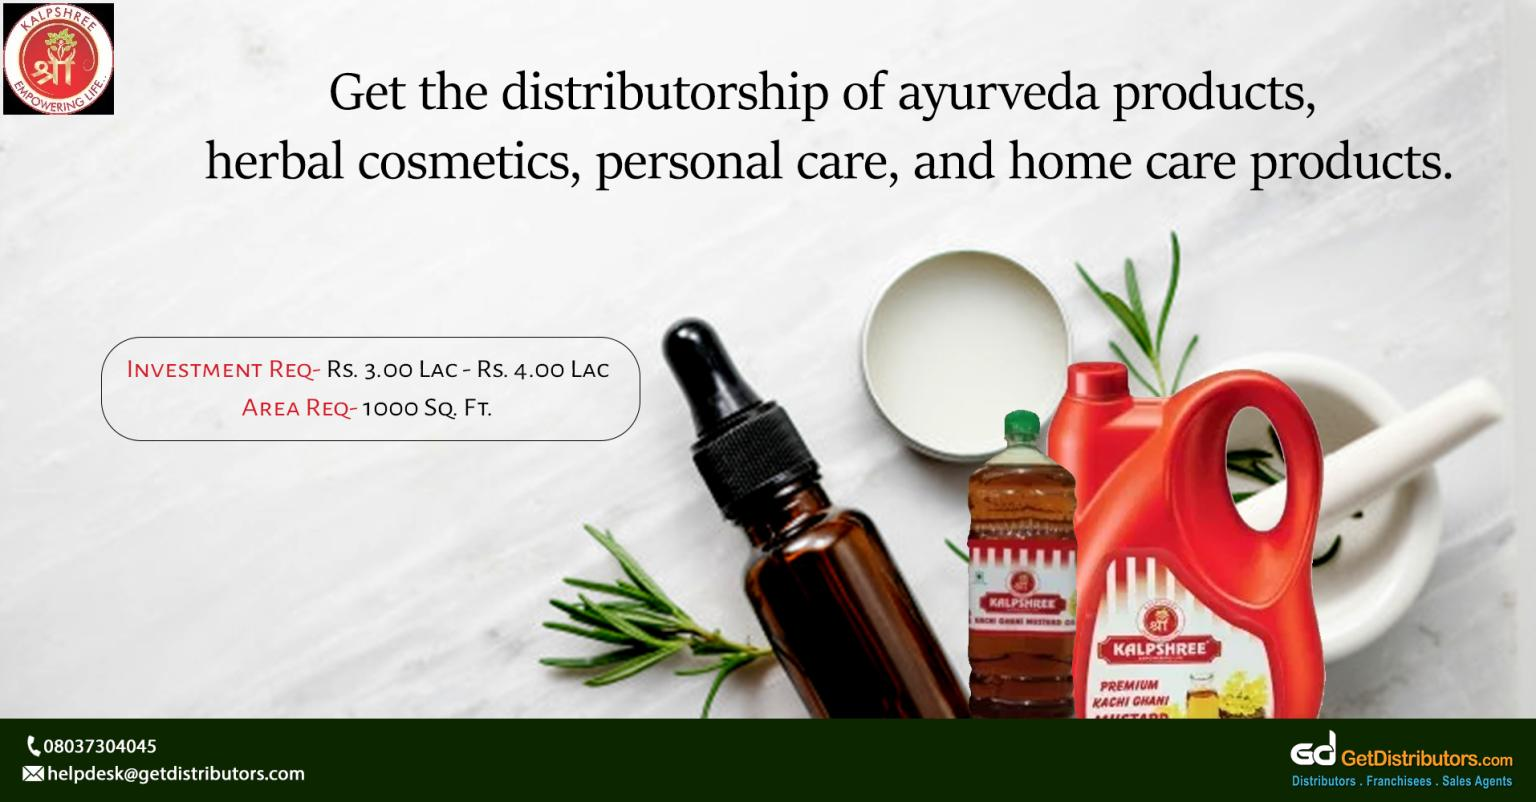 Wide range of ayurveda products, herbal cosmetics, personal care, and home care products for distribution